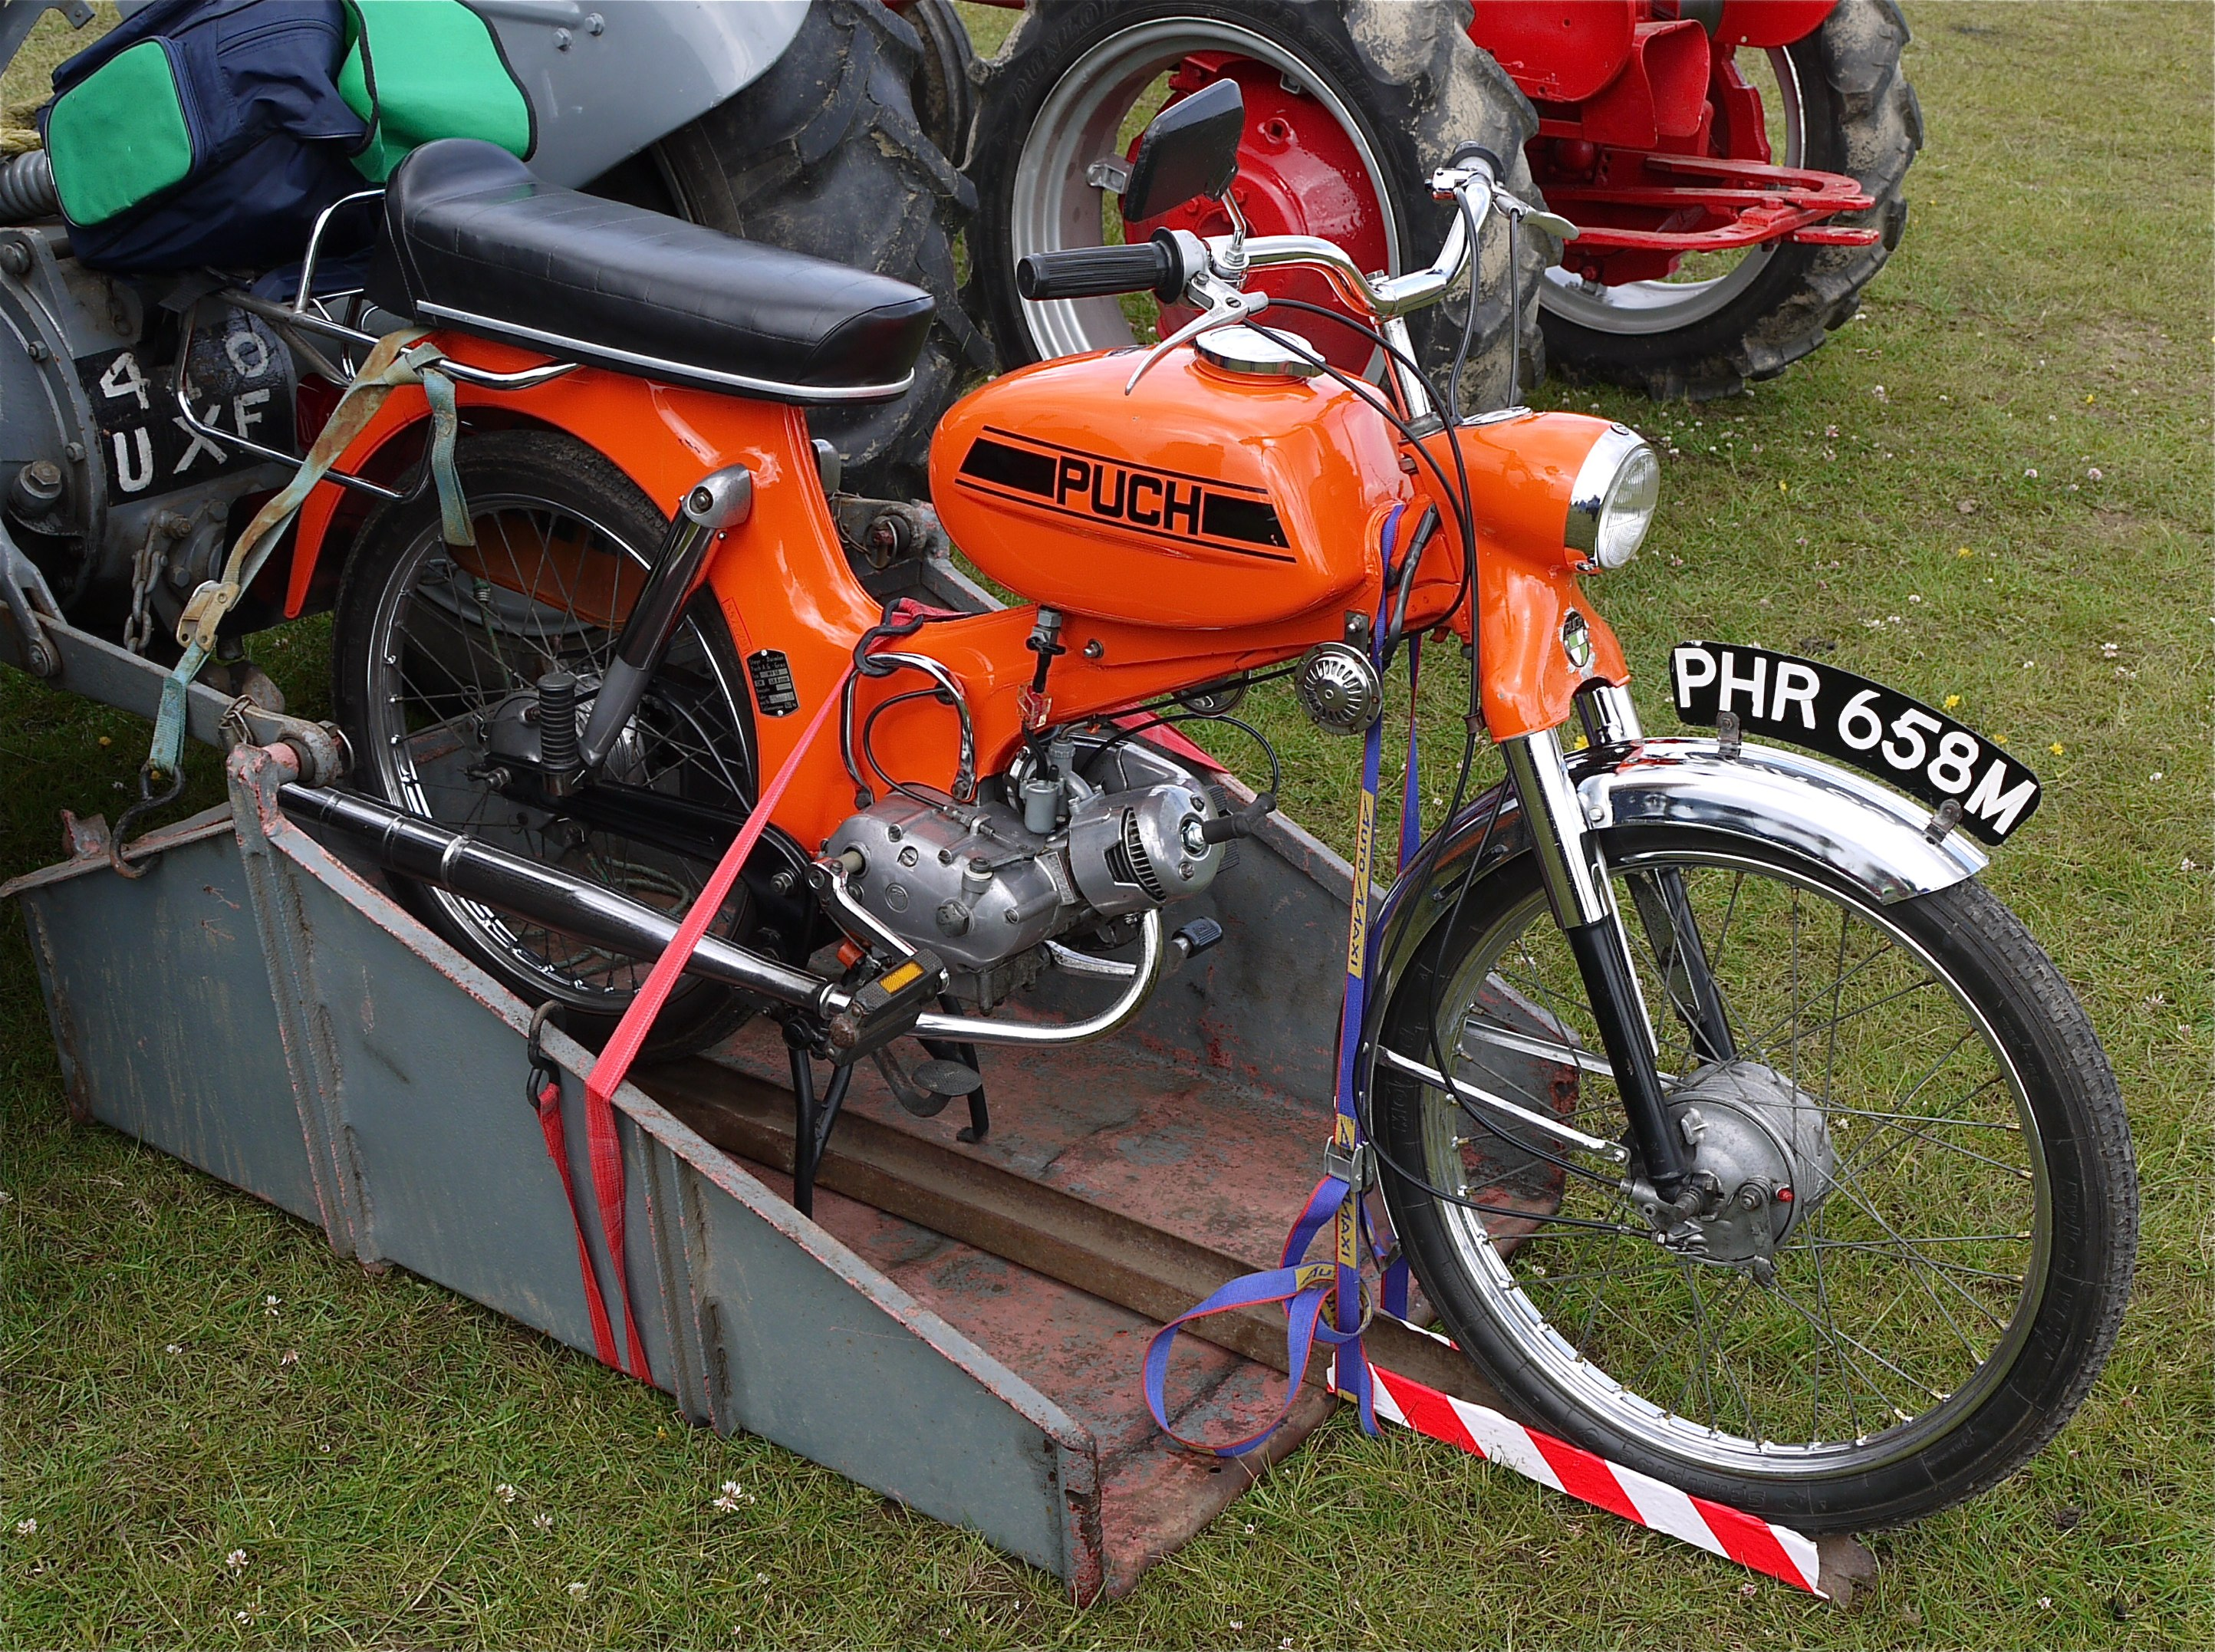 File:Puch moped, pity it stayed on the trailer - Flickr